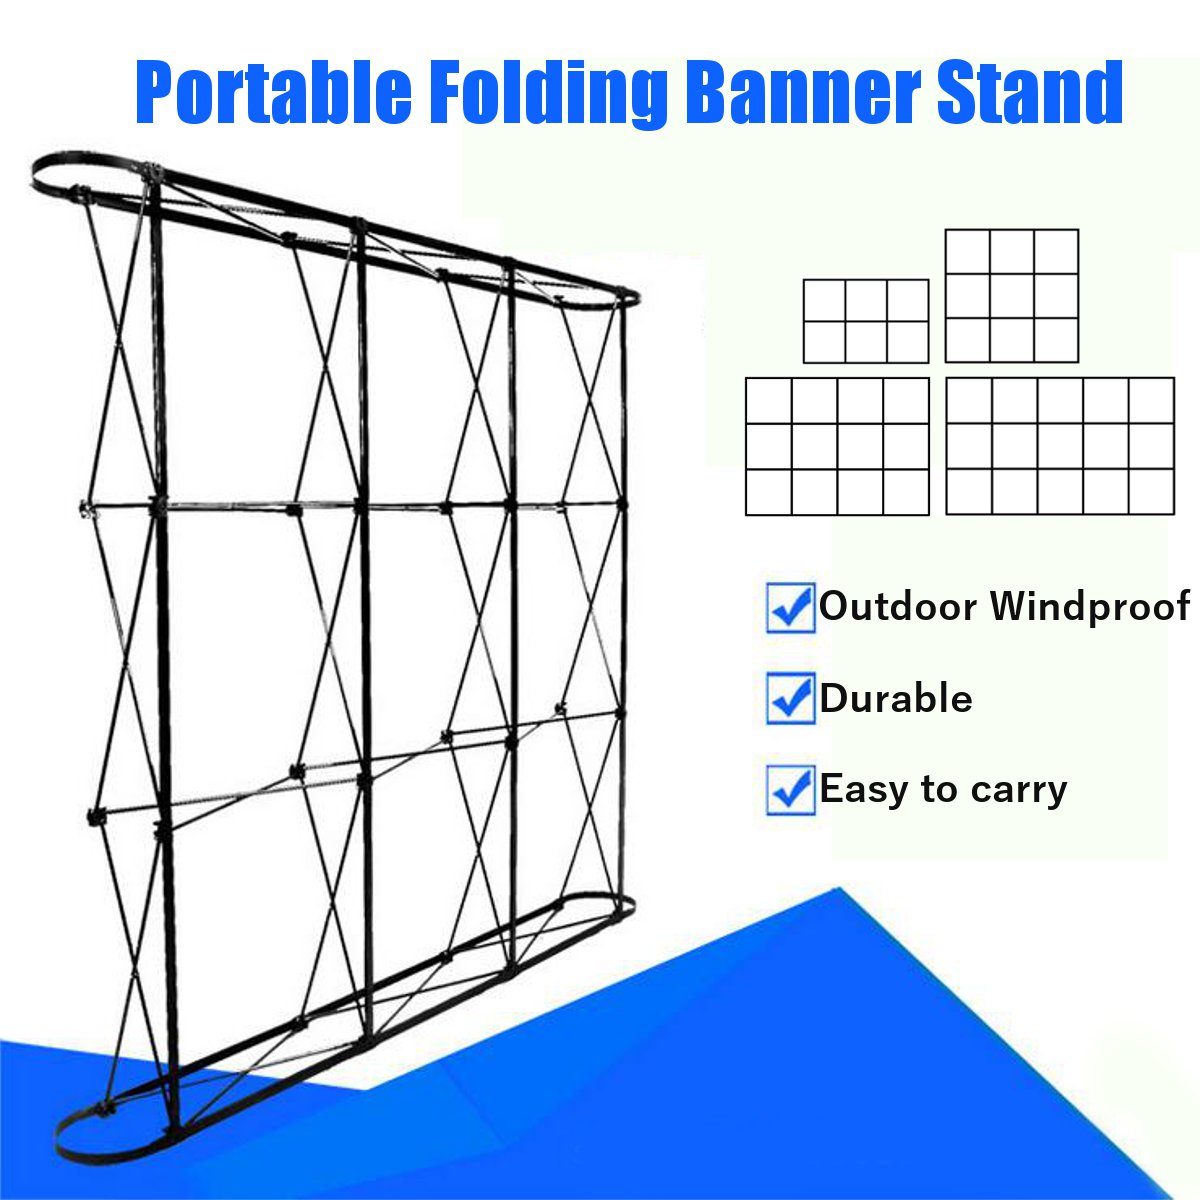 Portable Folding Banner Stand Wedding Party Wall Frame Backdrop Display Presentation Advertising Rack Stand Holder 4 Sizes